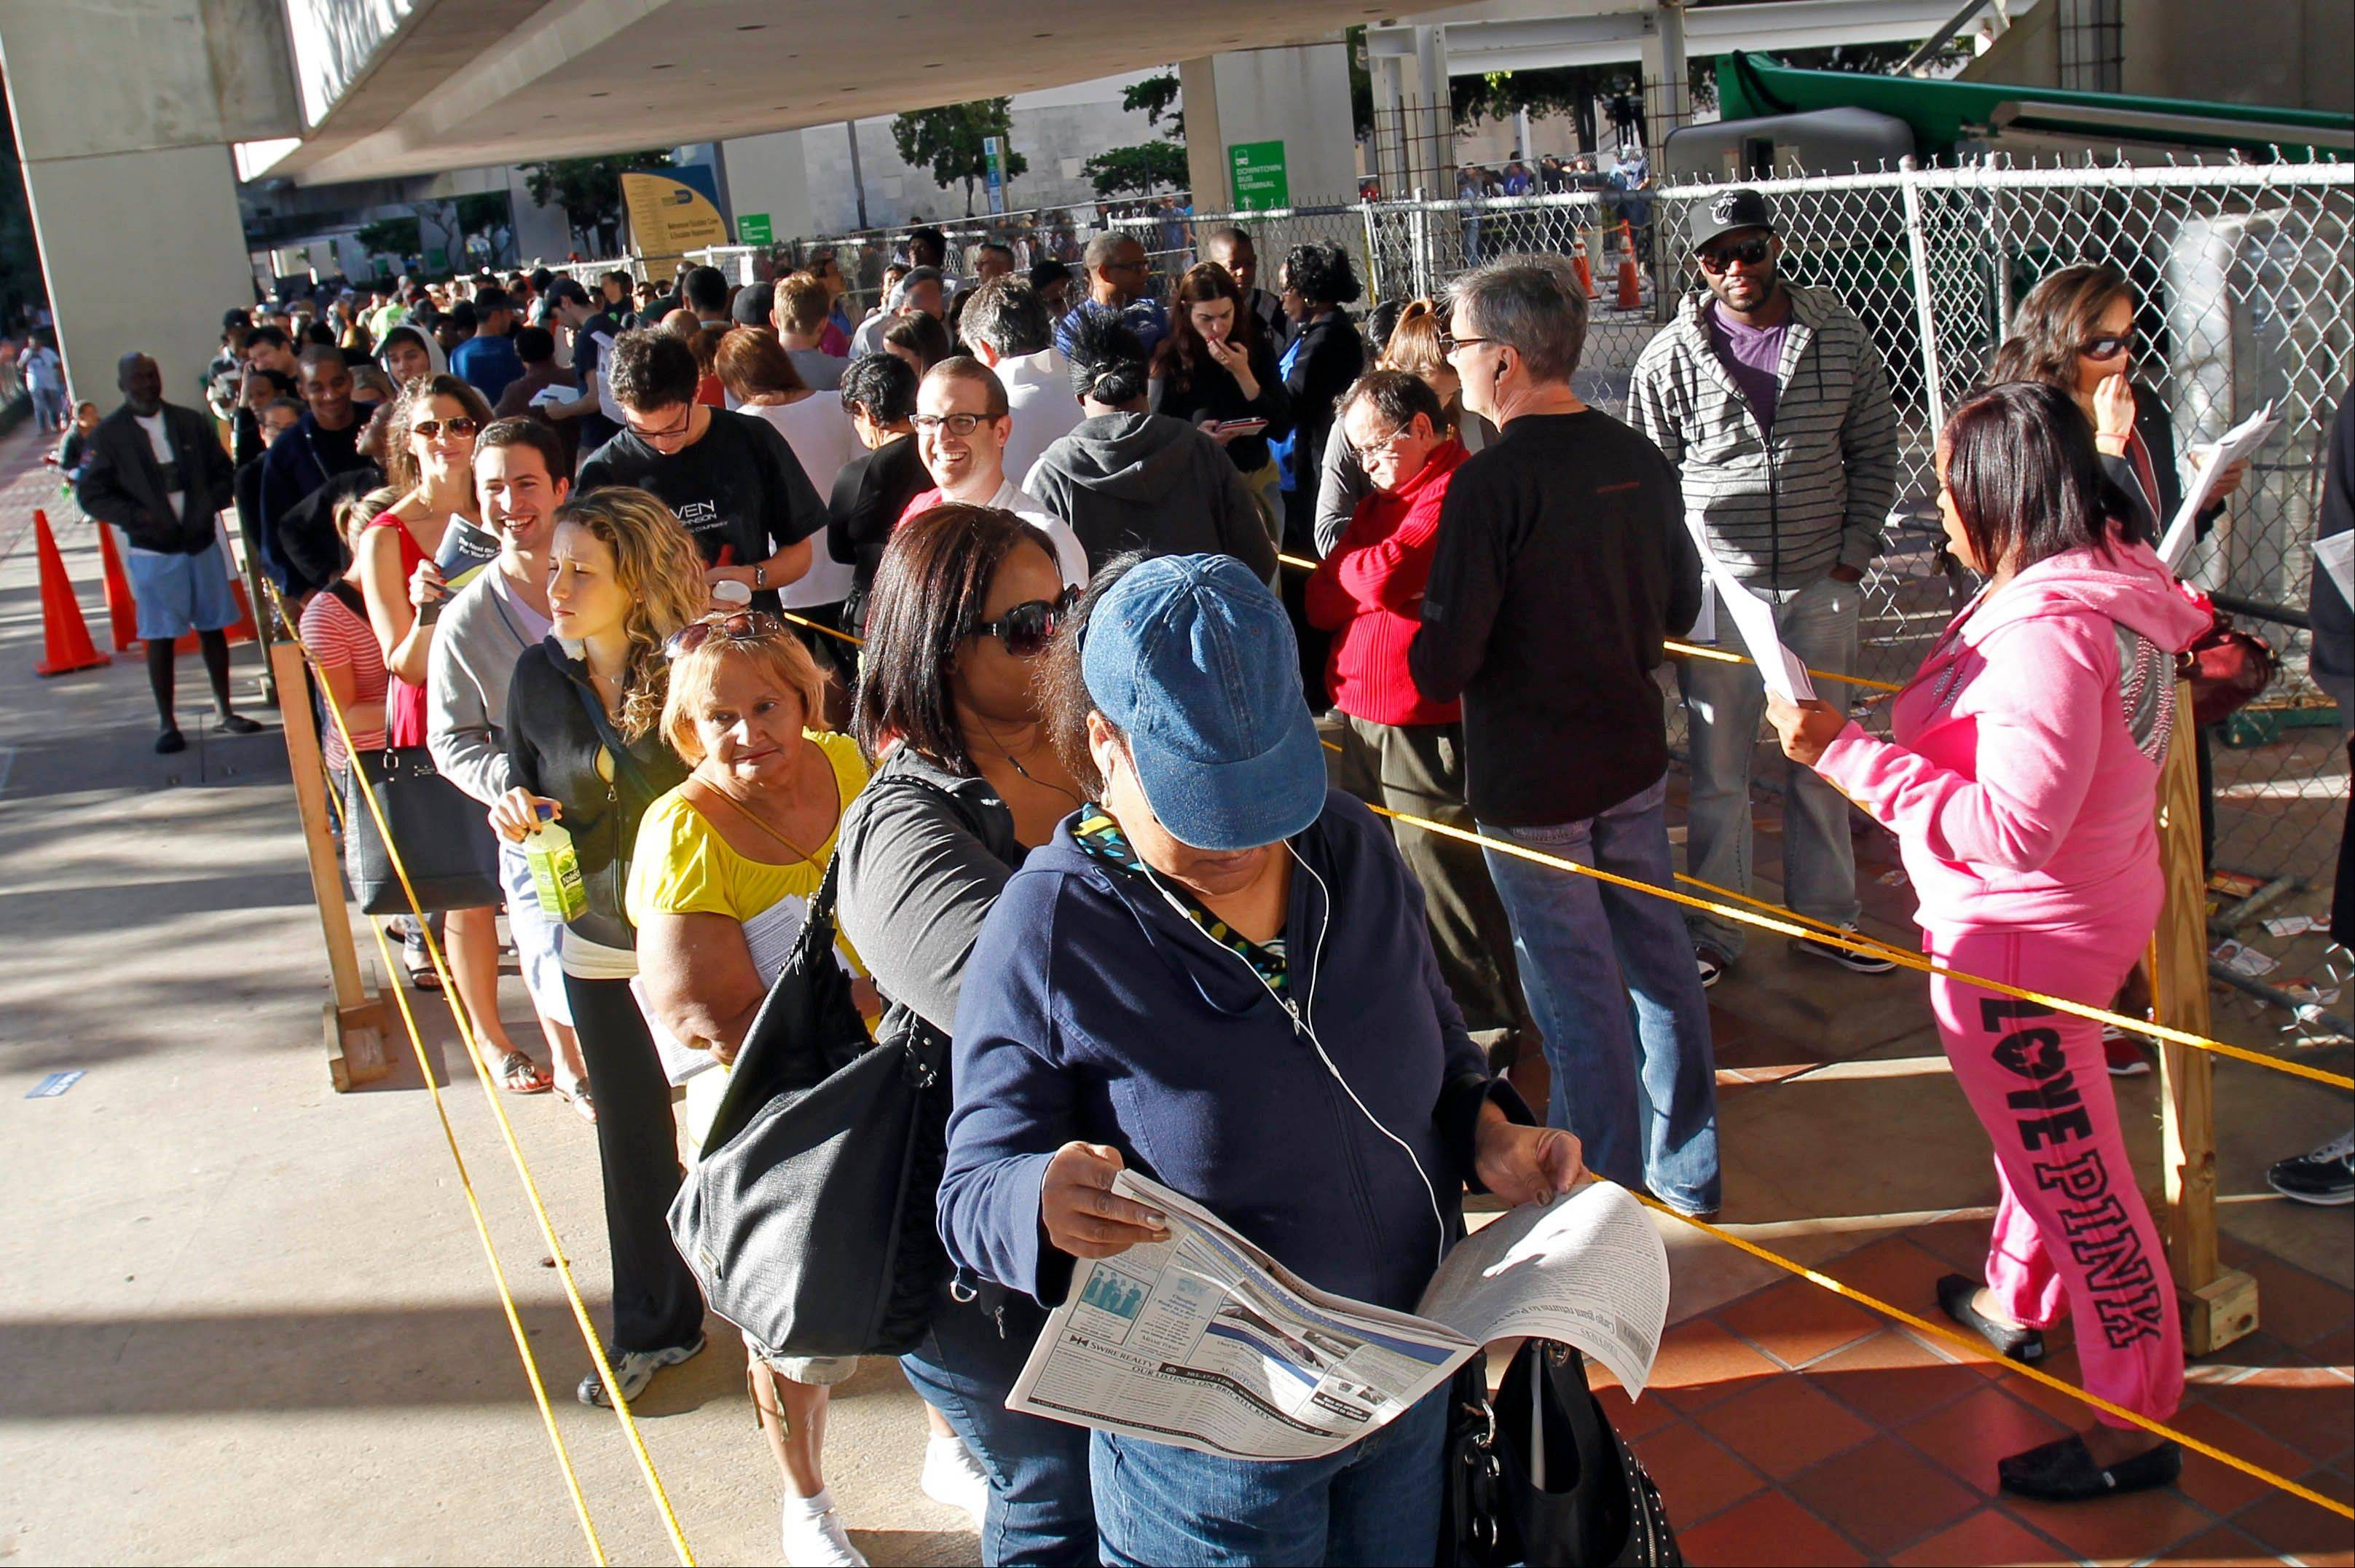 Floridians stand in line Sunday, the last day of early voting, in Miami. A judge extended early voting hours in one Florida county Sunday after Democrats sued to allow more time.